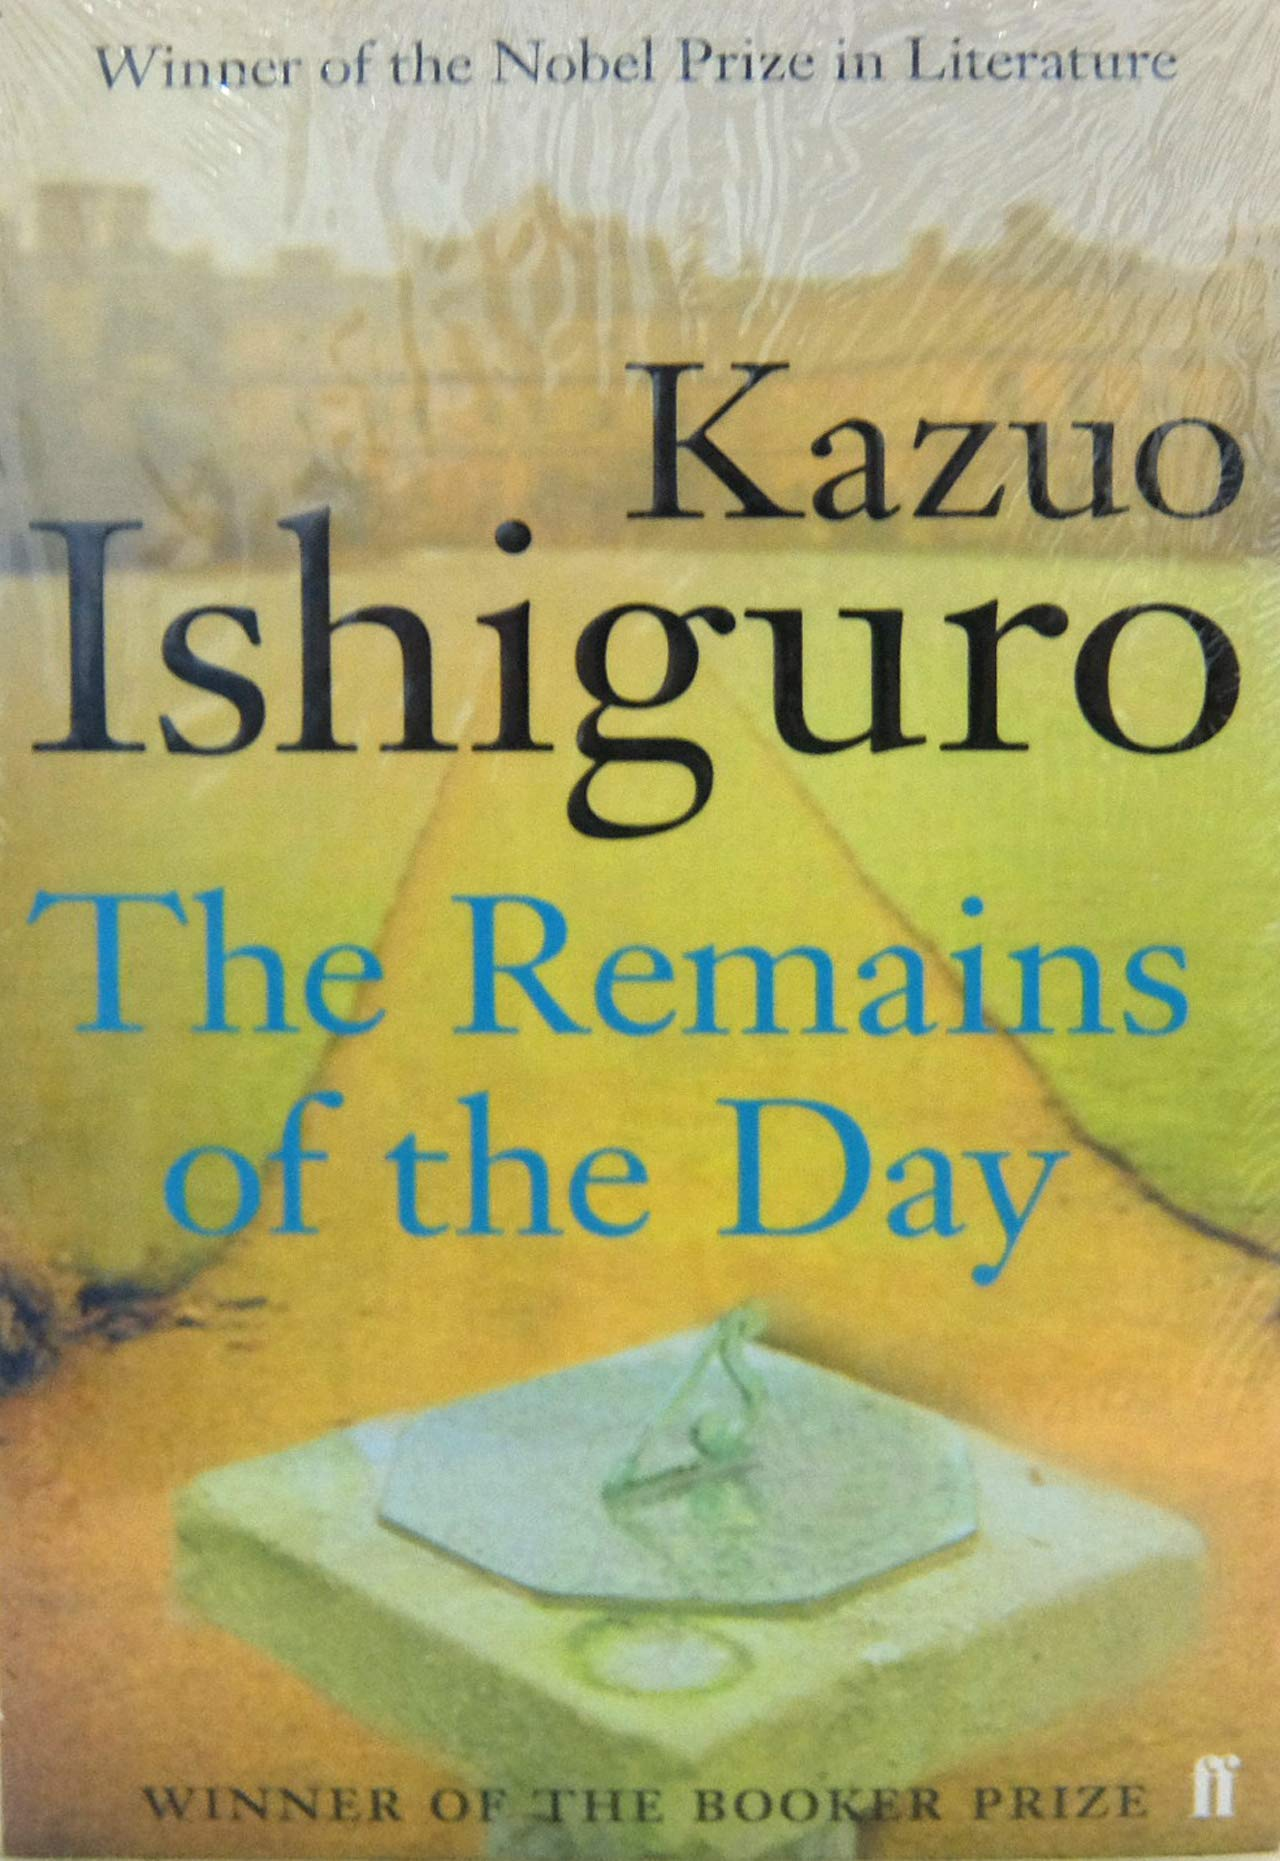 the remains of the day ebook free download